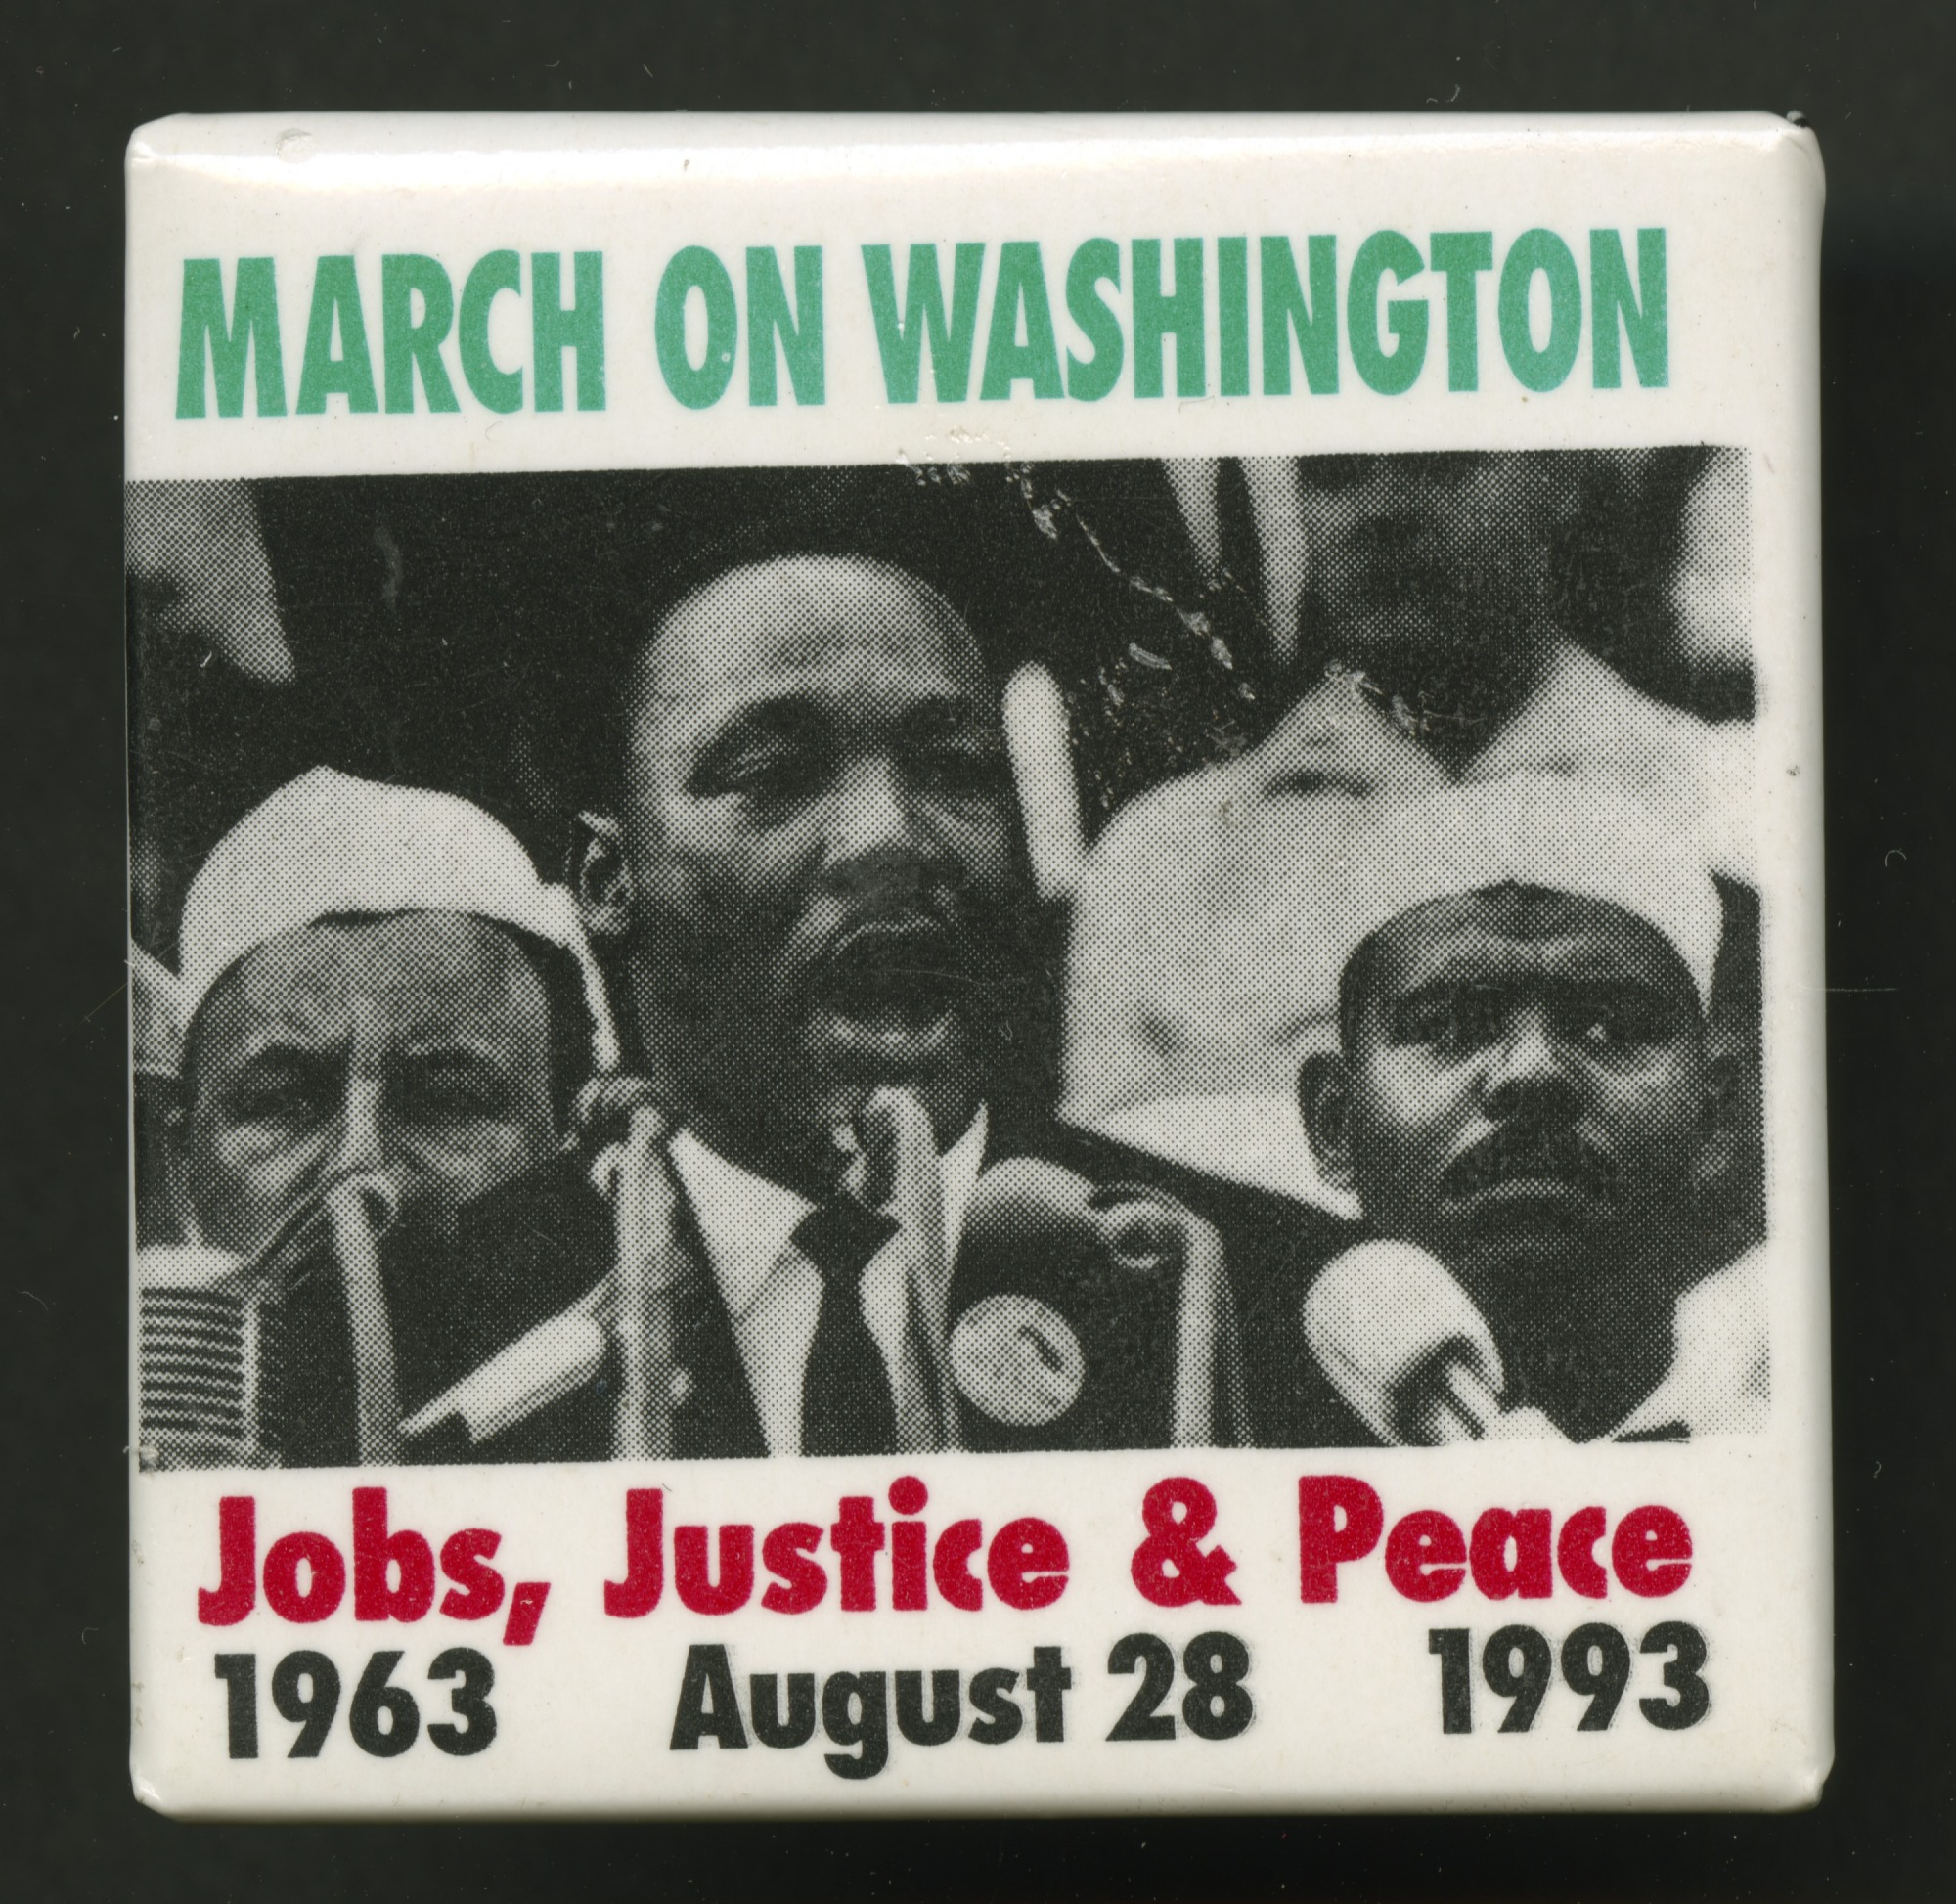 images for Pinback button commemorating the March on Washington